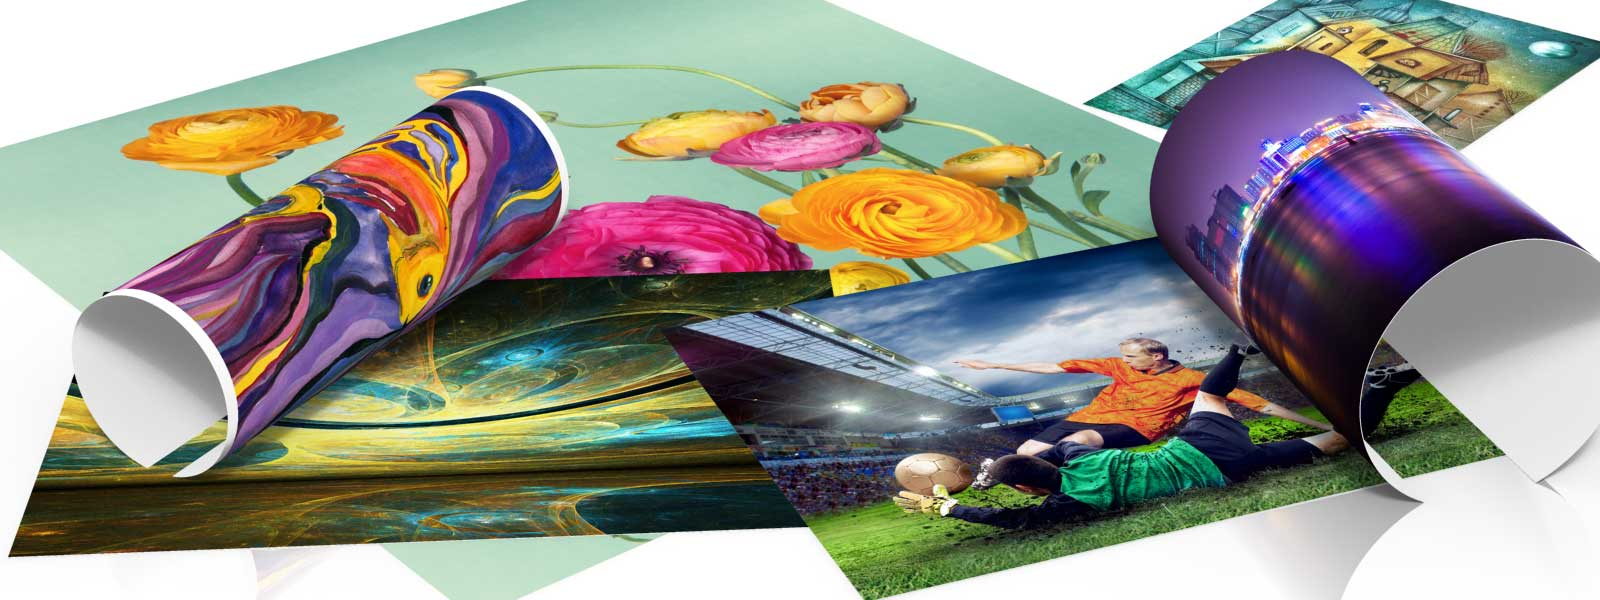 Print Photo Quality Posters Online. Order Now!